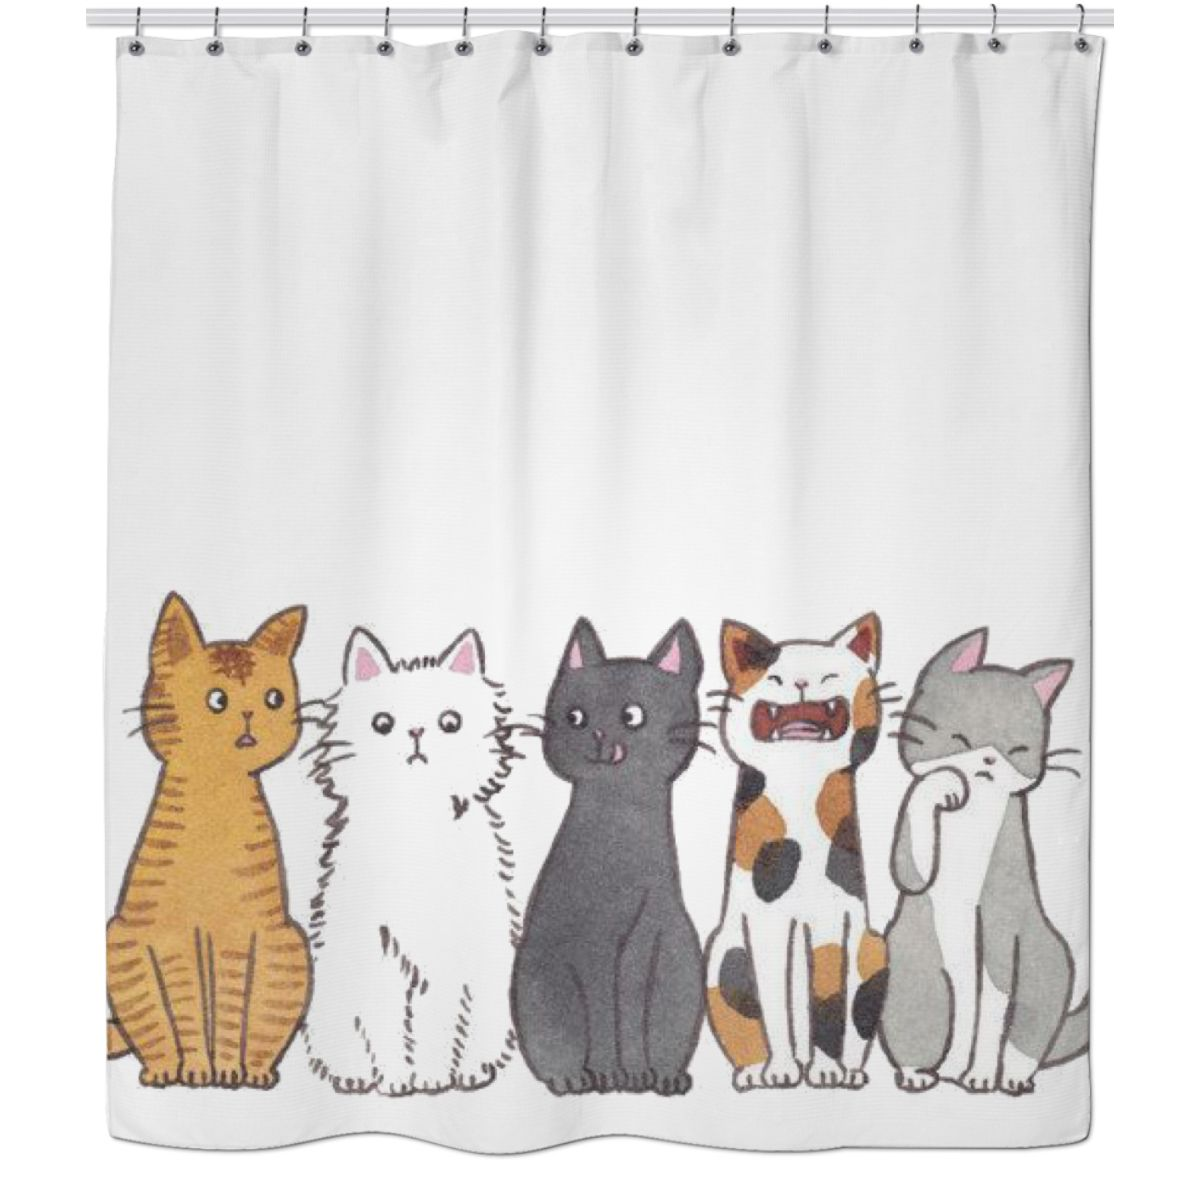 Cat Shower Curtain Funny Playful Cats Image Print for Bathroom